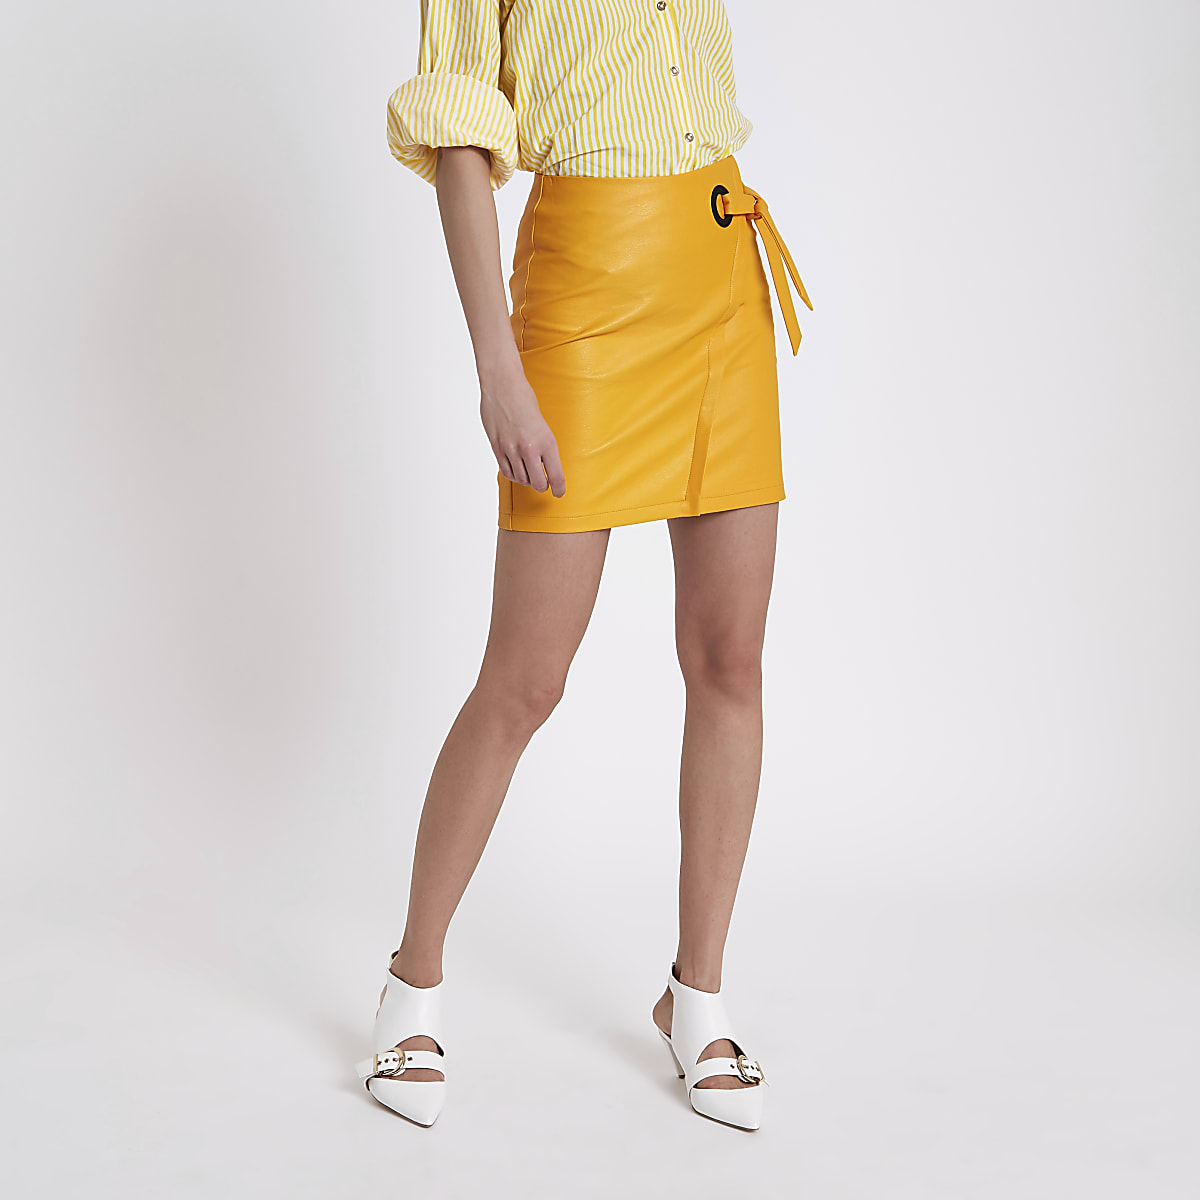 Orange wrap eyelet tie-up mini skirt